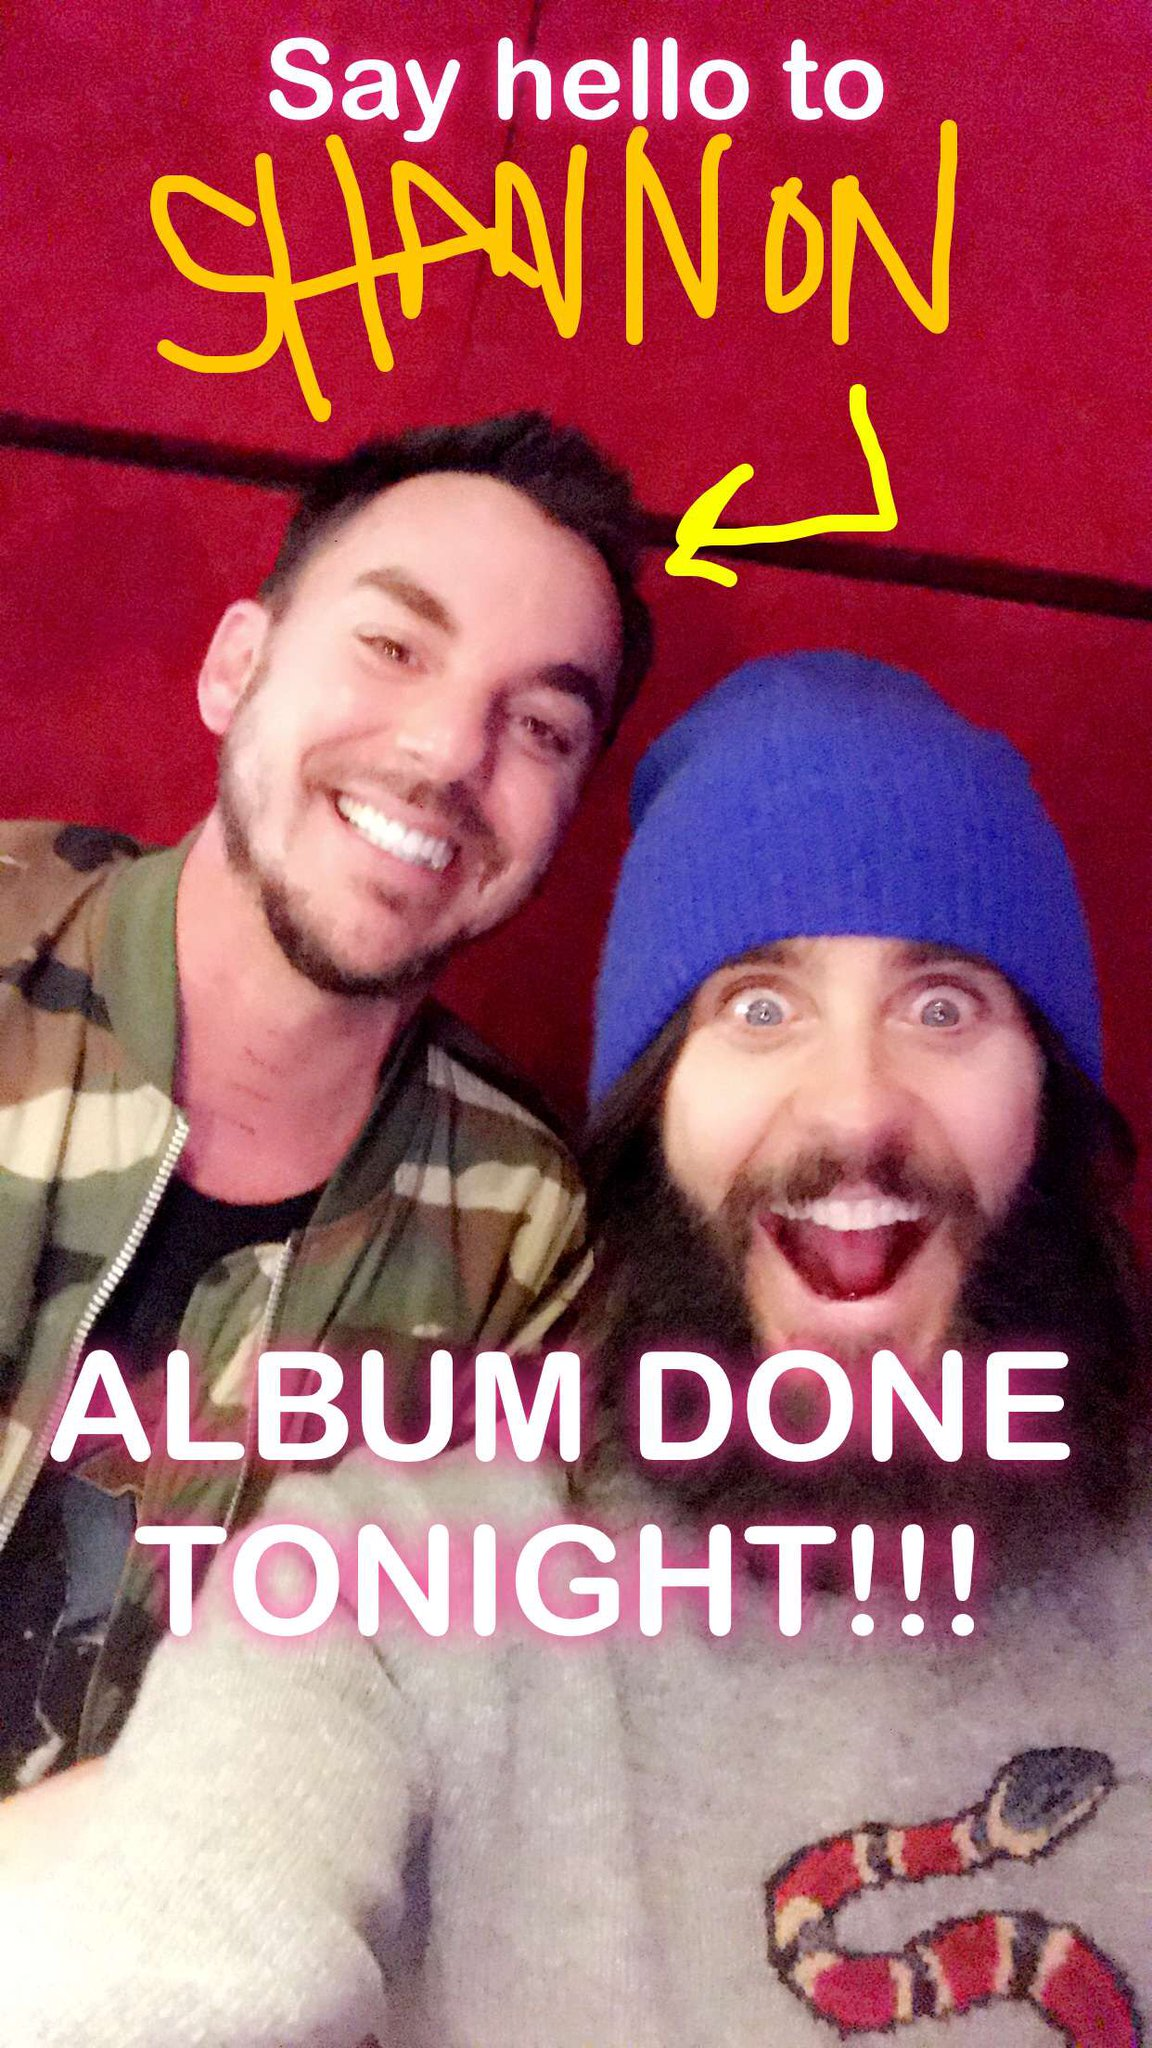 ������ ALBUM DONE!!! Check @JaredLeto's Story for all the IG Live fun before it disappears: https://t.co/2YDXcngCnL https://t.co/gUsm55TUKn